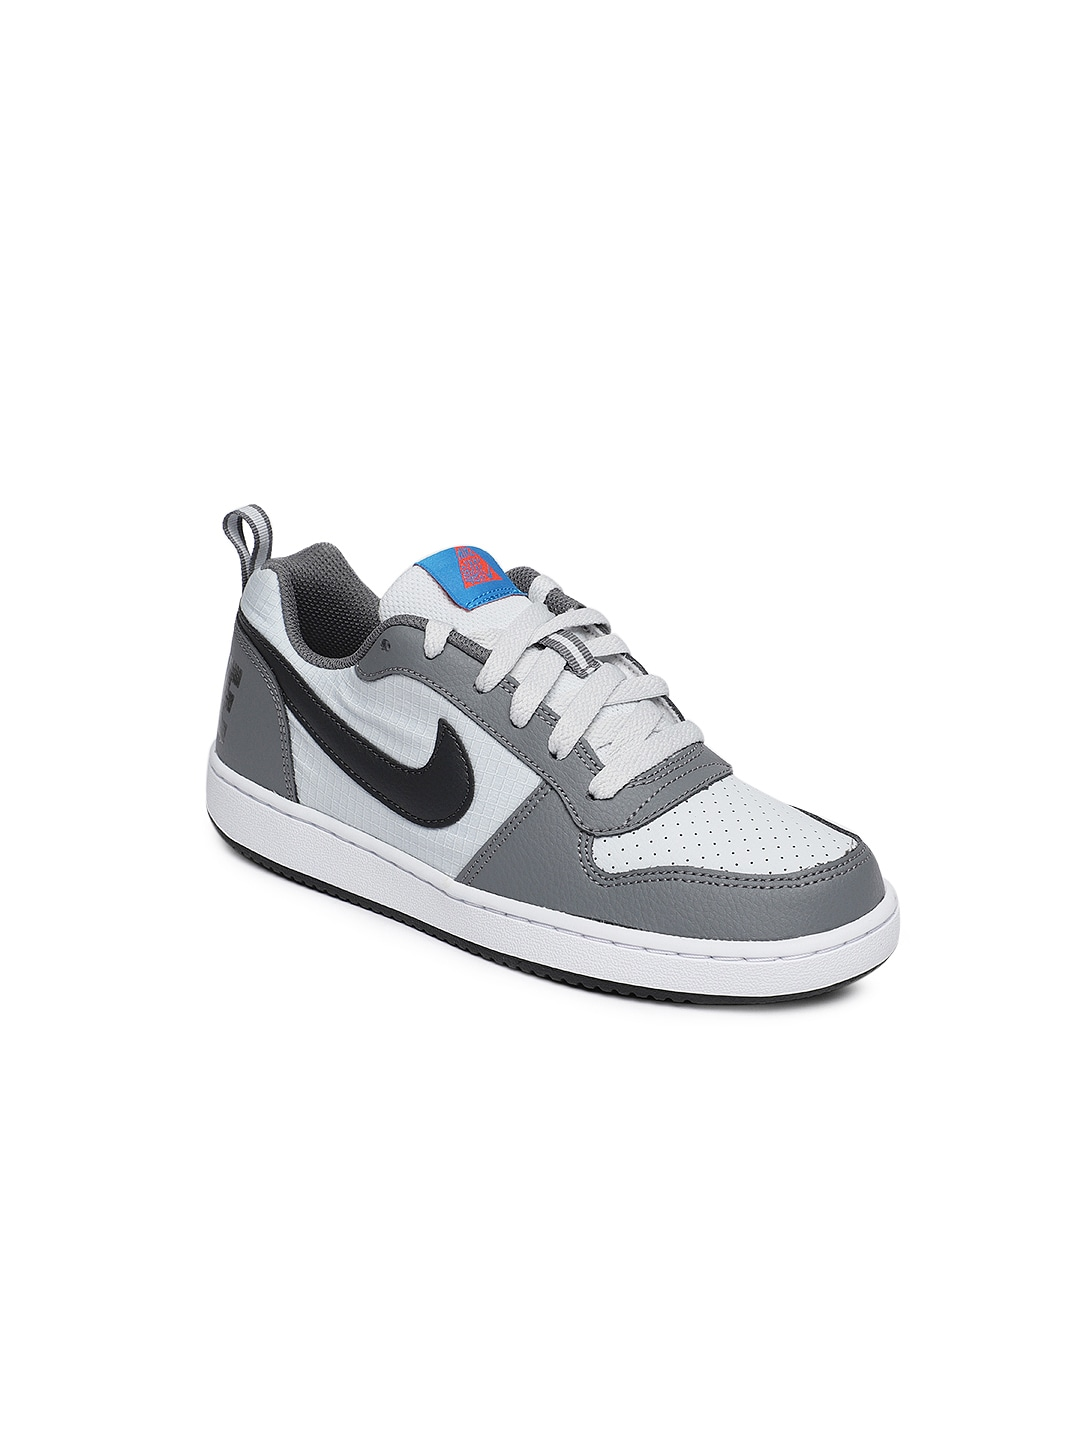 Boy s Nike Shoes - Buy Nike Shoes for Boys Online in India 207a8b908